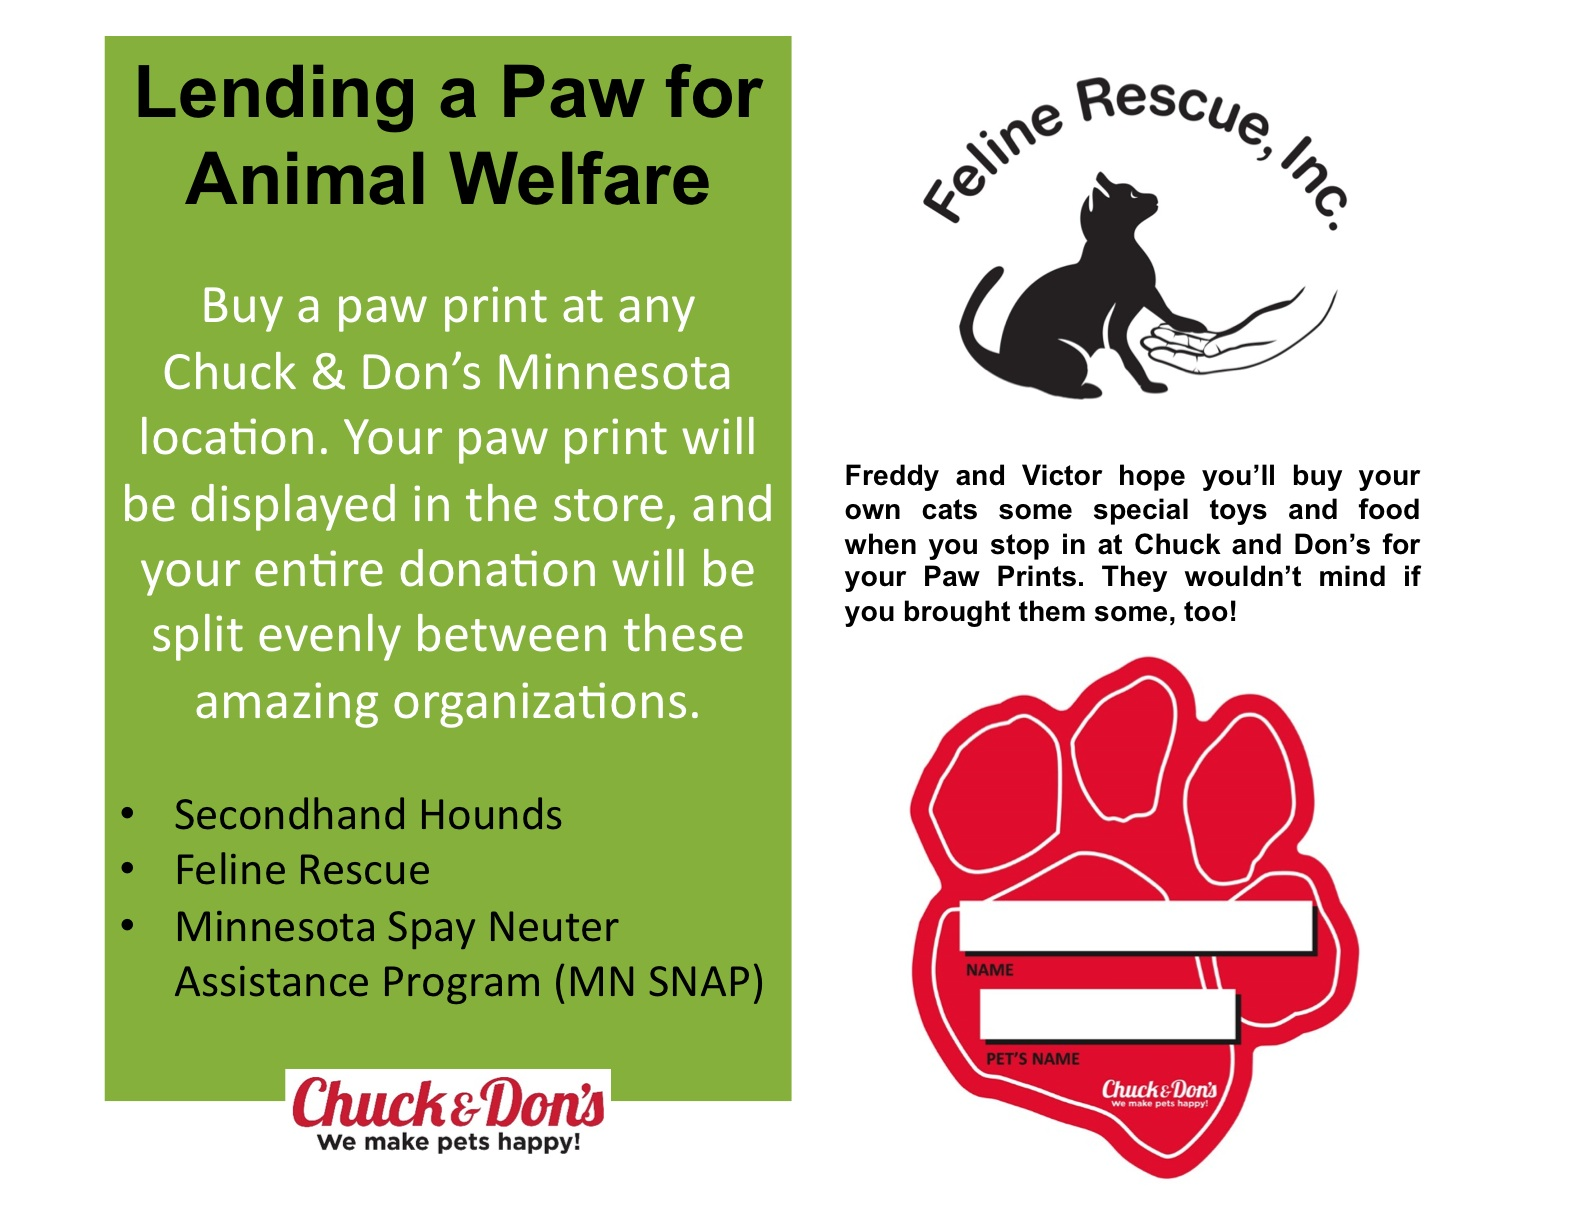 Chuck & Don's Paw Print Fundraiser